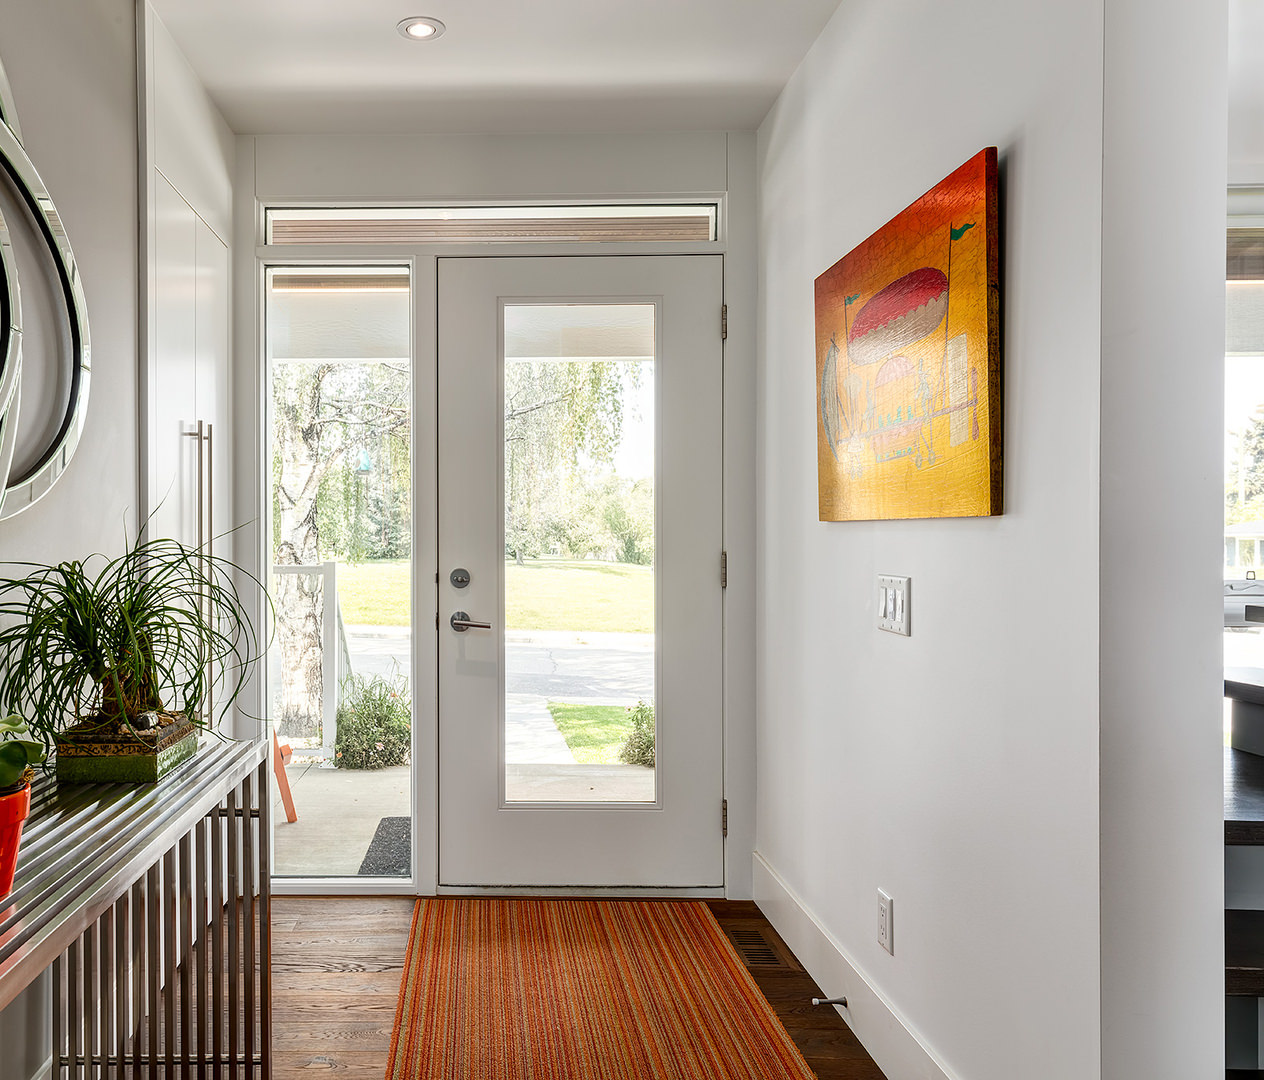 The warm grey tone walls are neutralized by the bright colored floor rug and wall painting. Also, the natural lighting from the outside shines inside through the glass door.